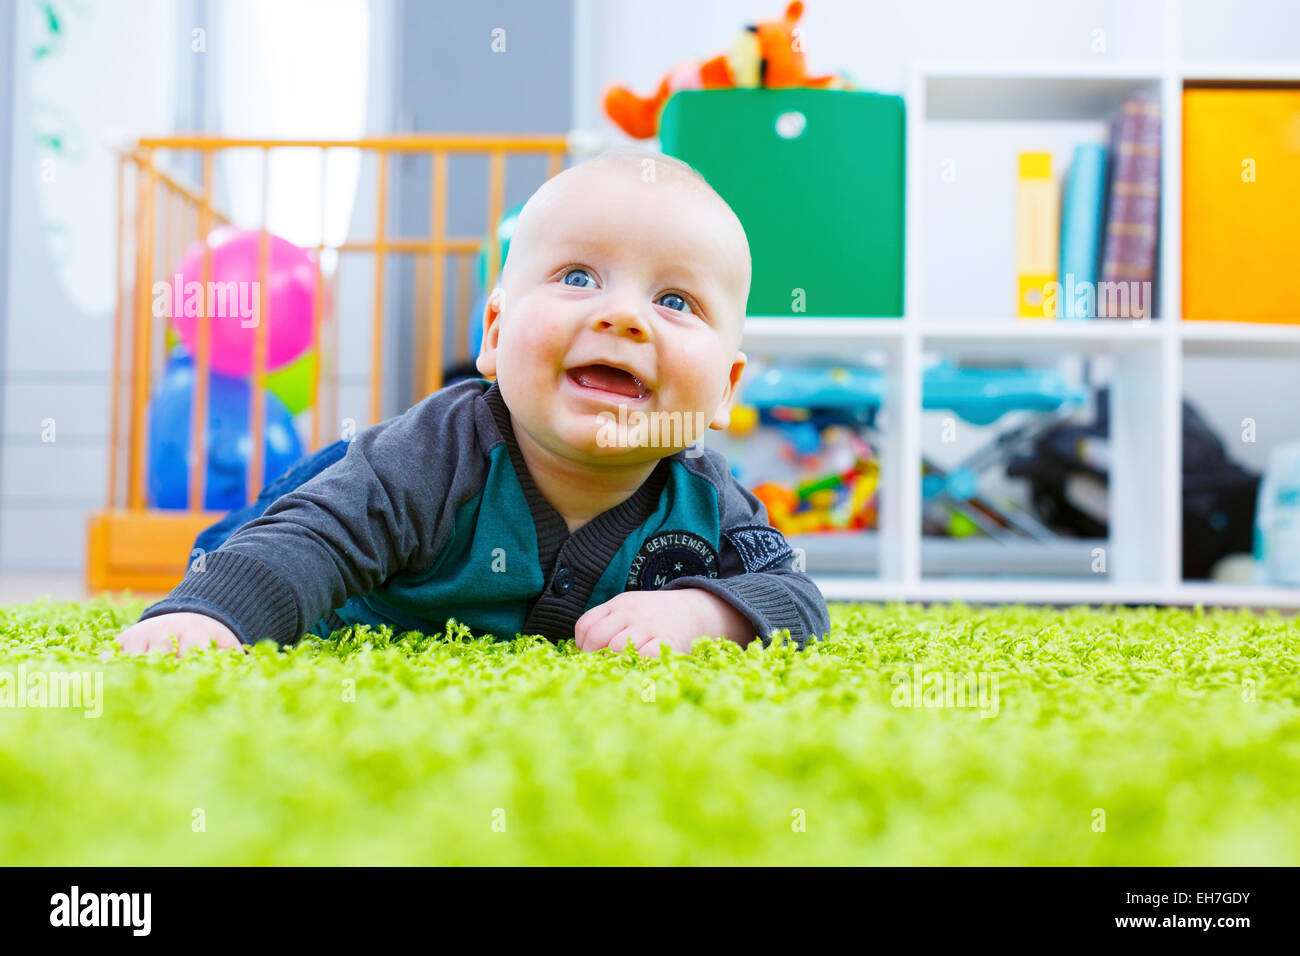 Baby crawling in nursery - Stock Image